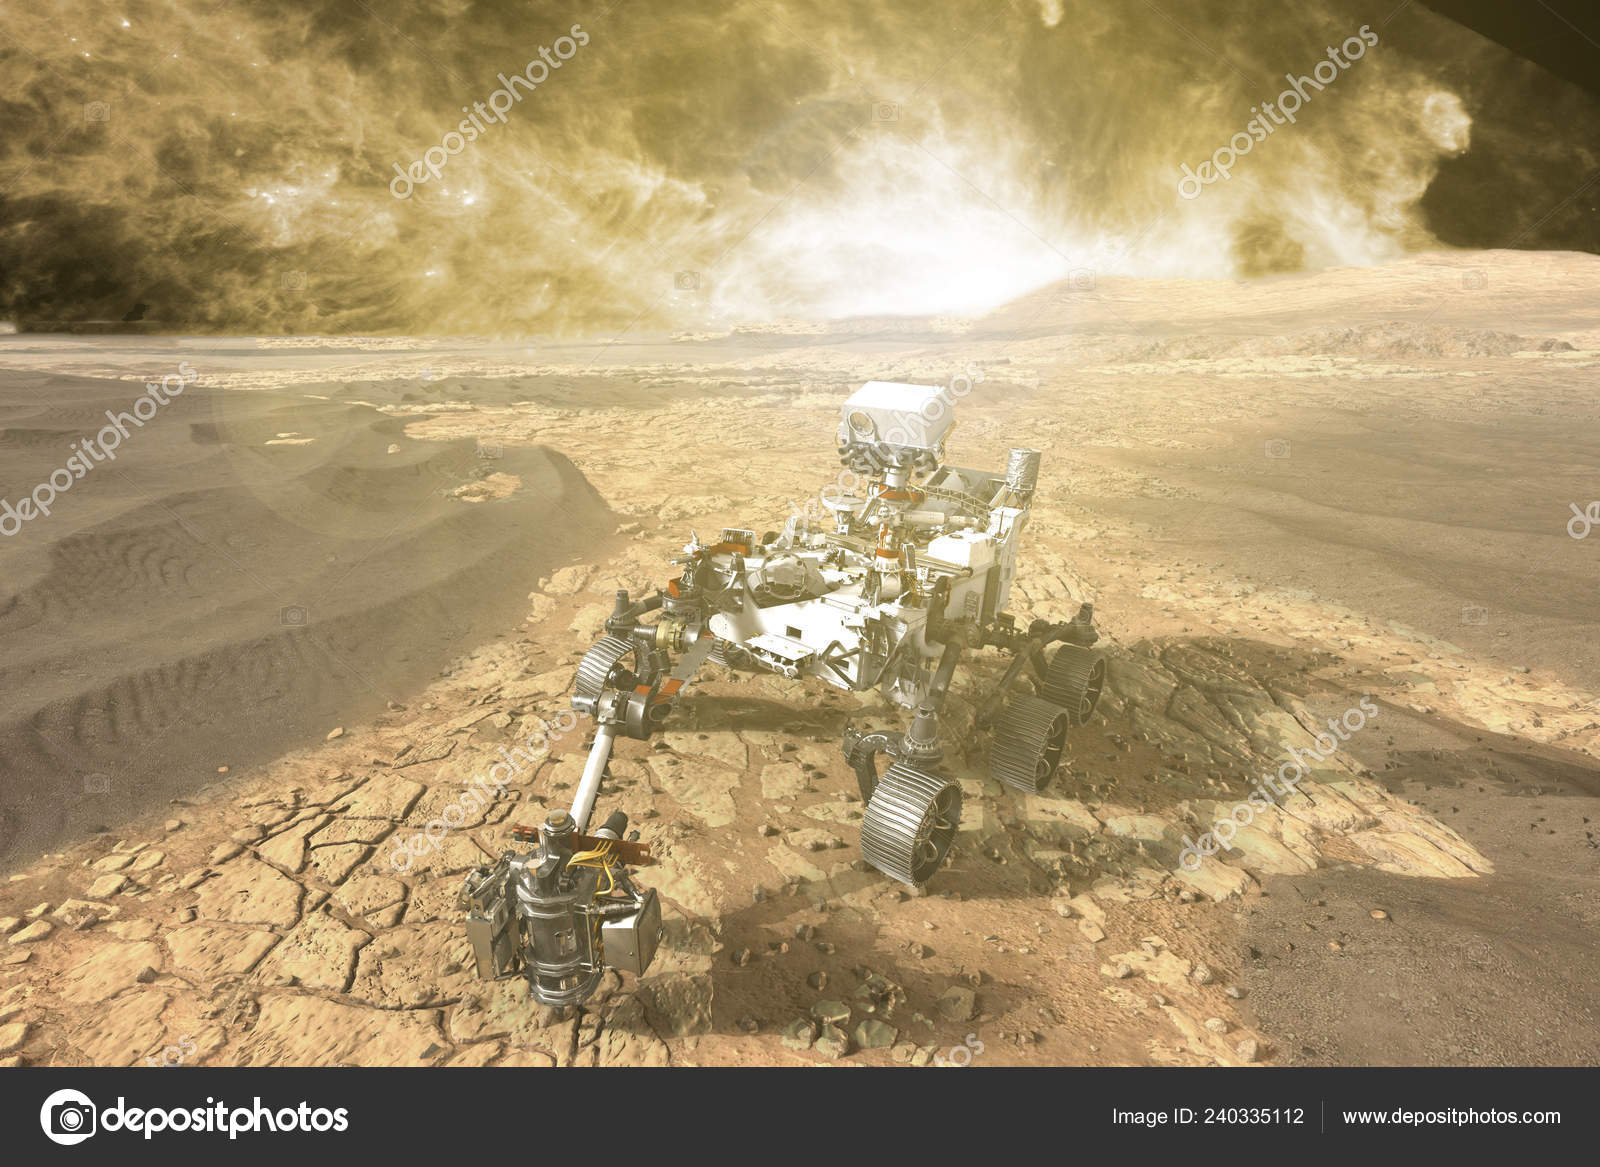 futuristic mars rover exploring vasts of red planet f — Stock Photo